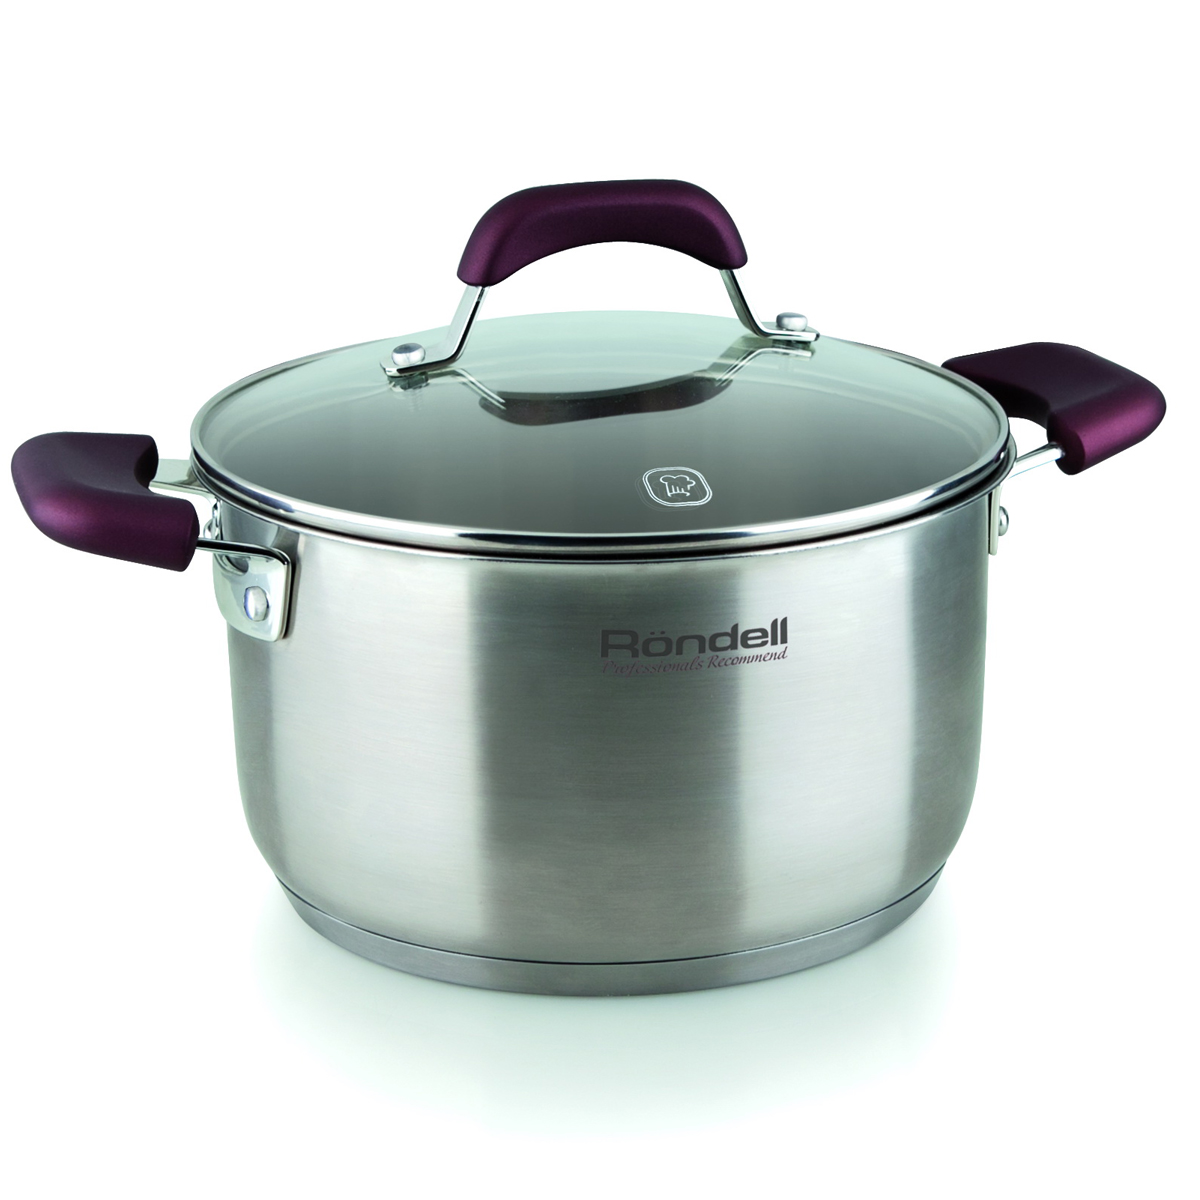 Saucepan with lid RONDELL RDS-736 (Diameter 20 cm, Volume 3.3 L, high quality stainless steel, cover of heat-resistant glass, internal Mark литража, suitable for all kinds of board) heat resistant esprao firme 24 cm